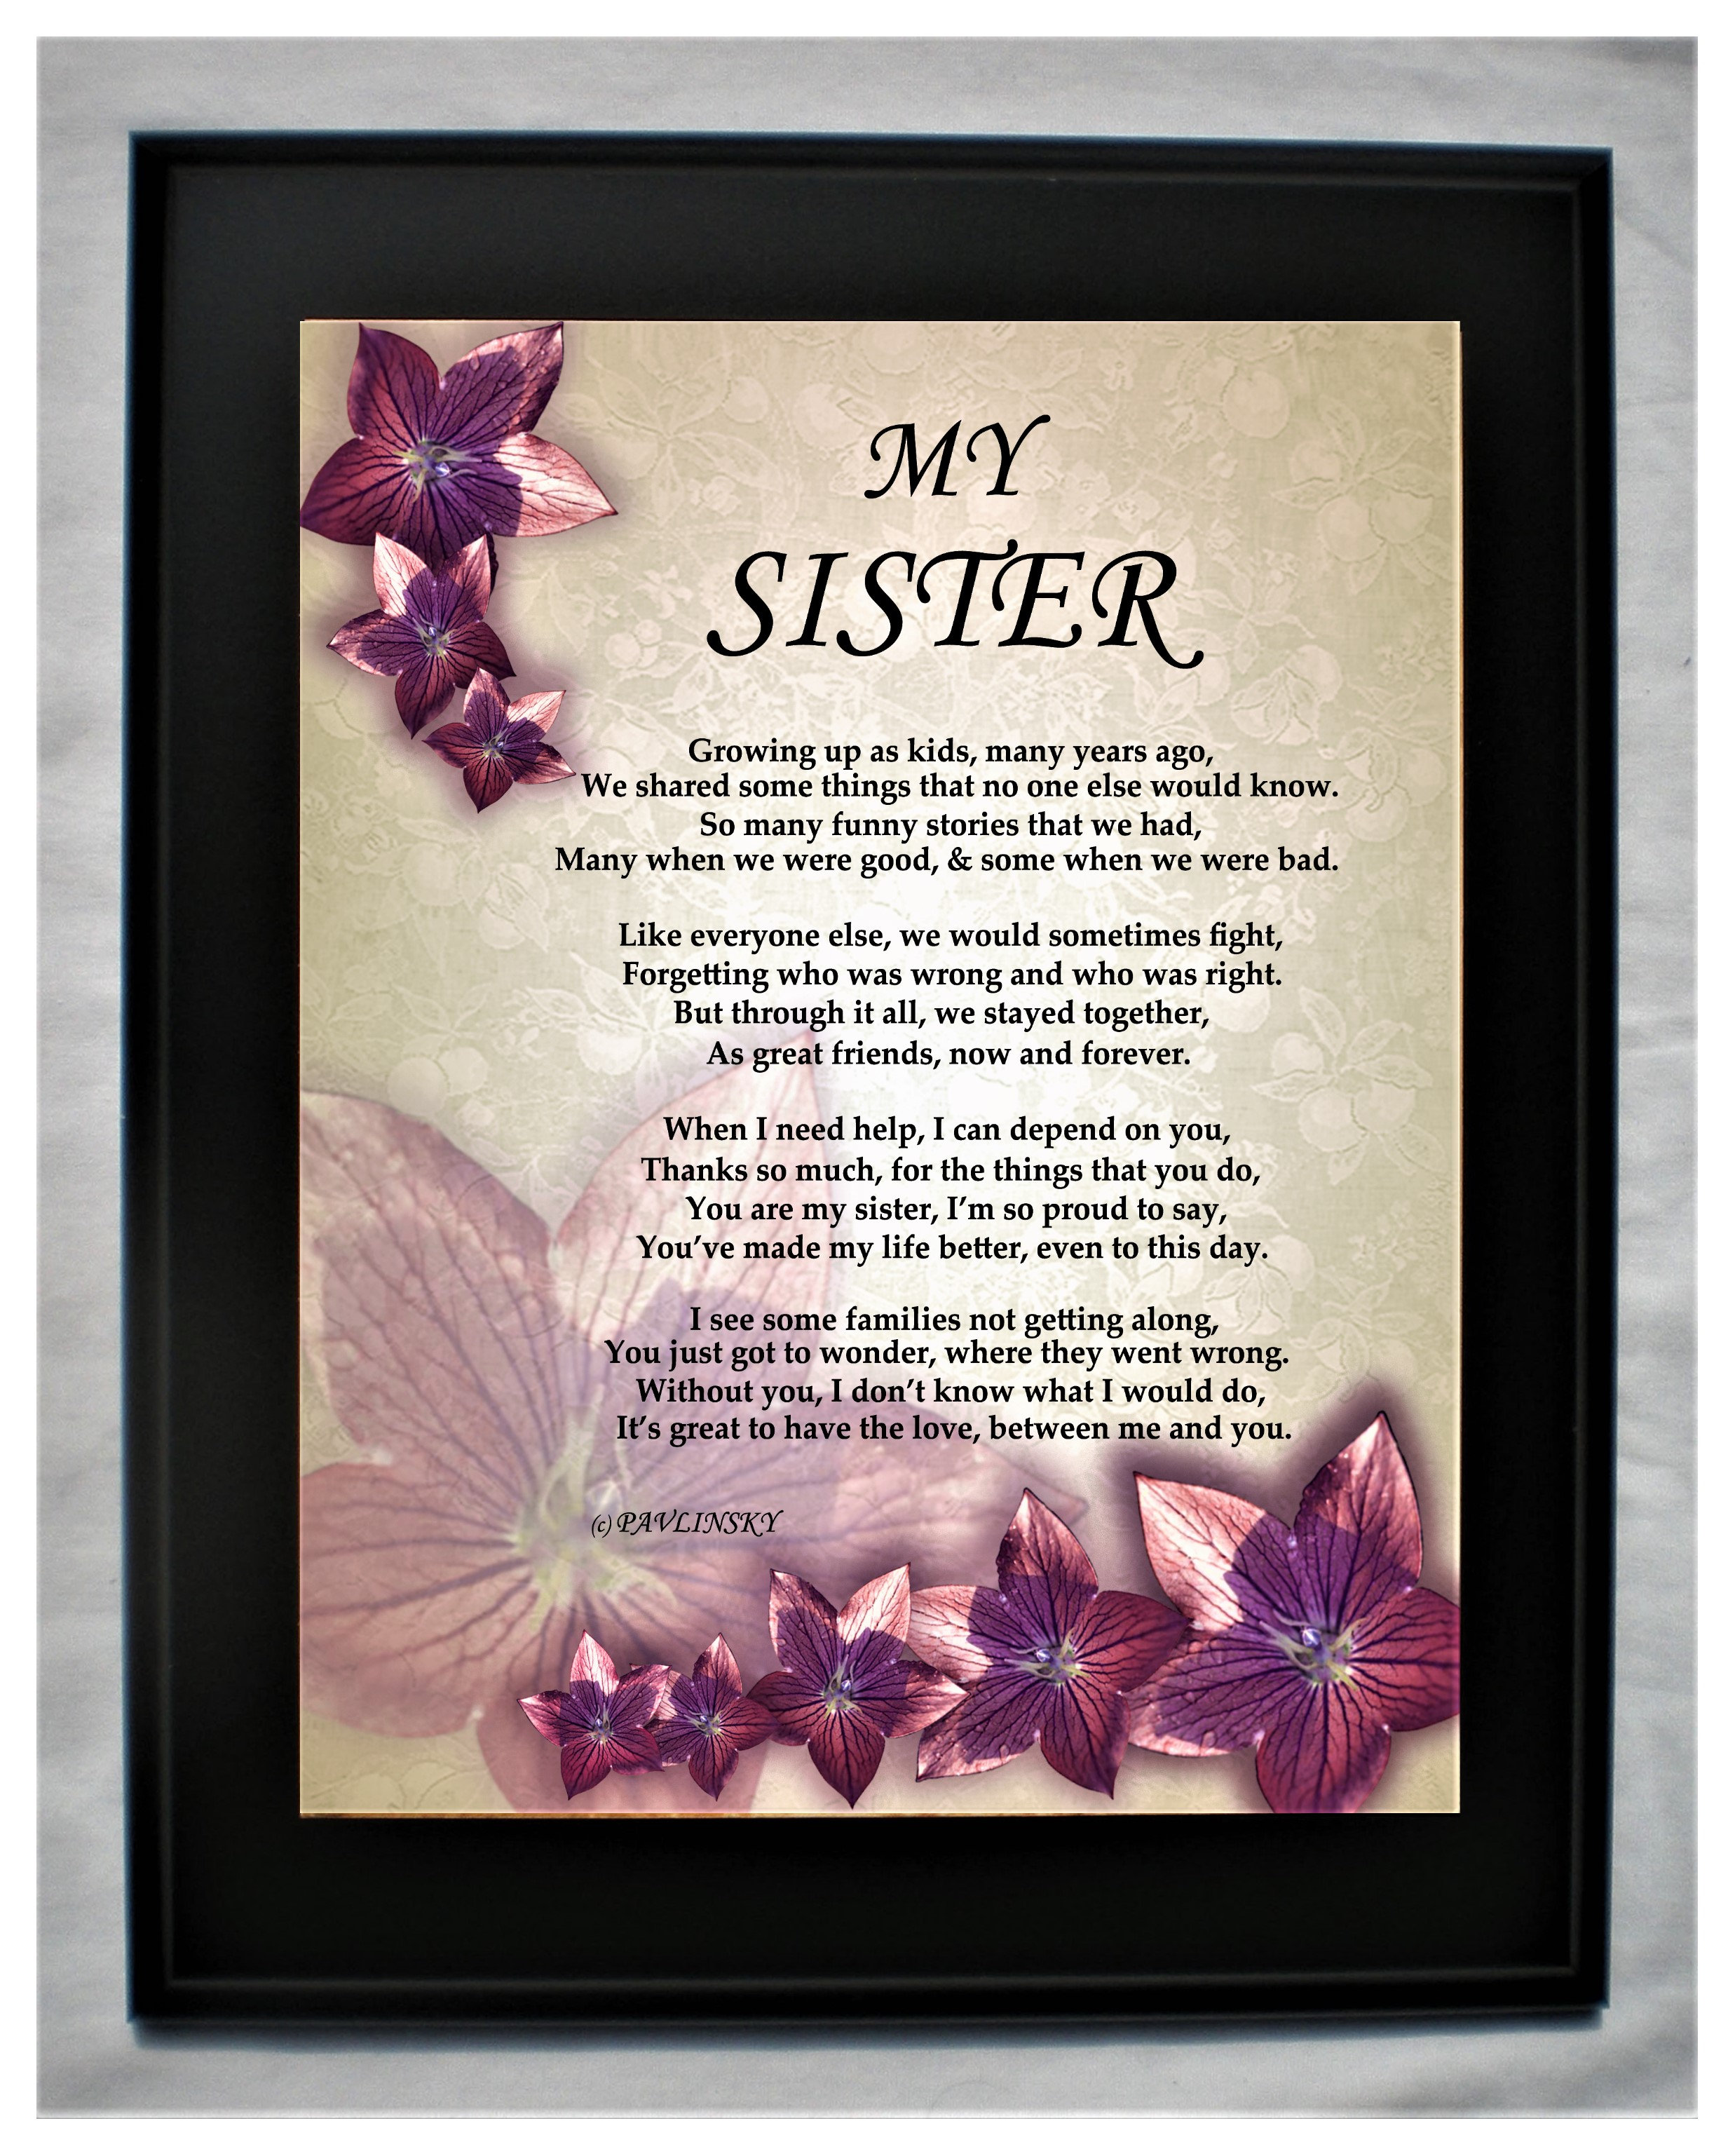 My Sister | pavlinsky-poems